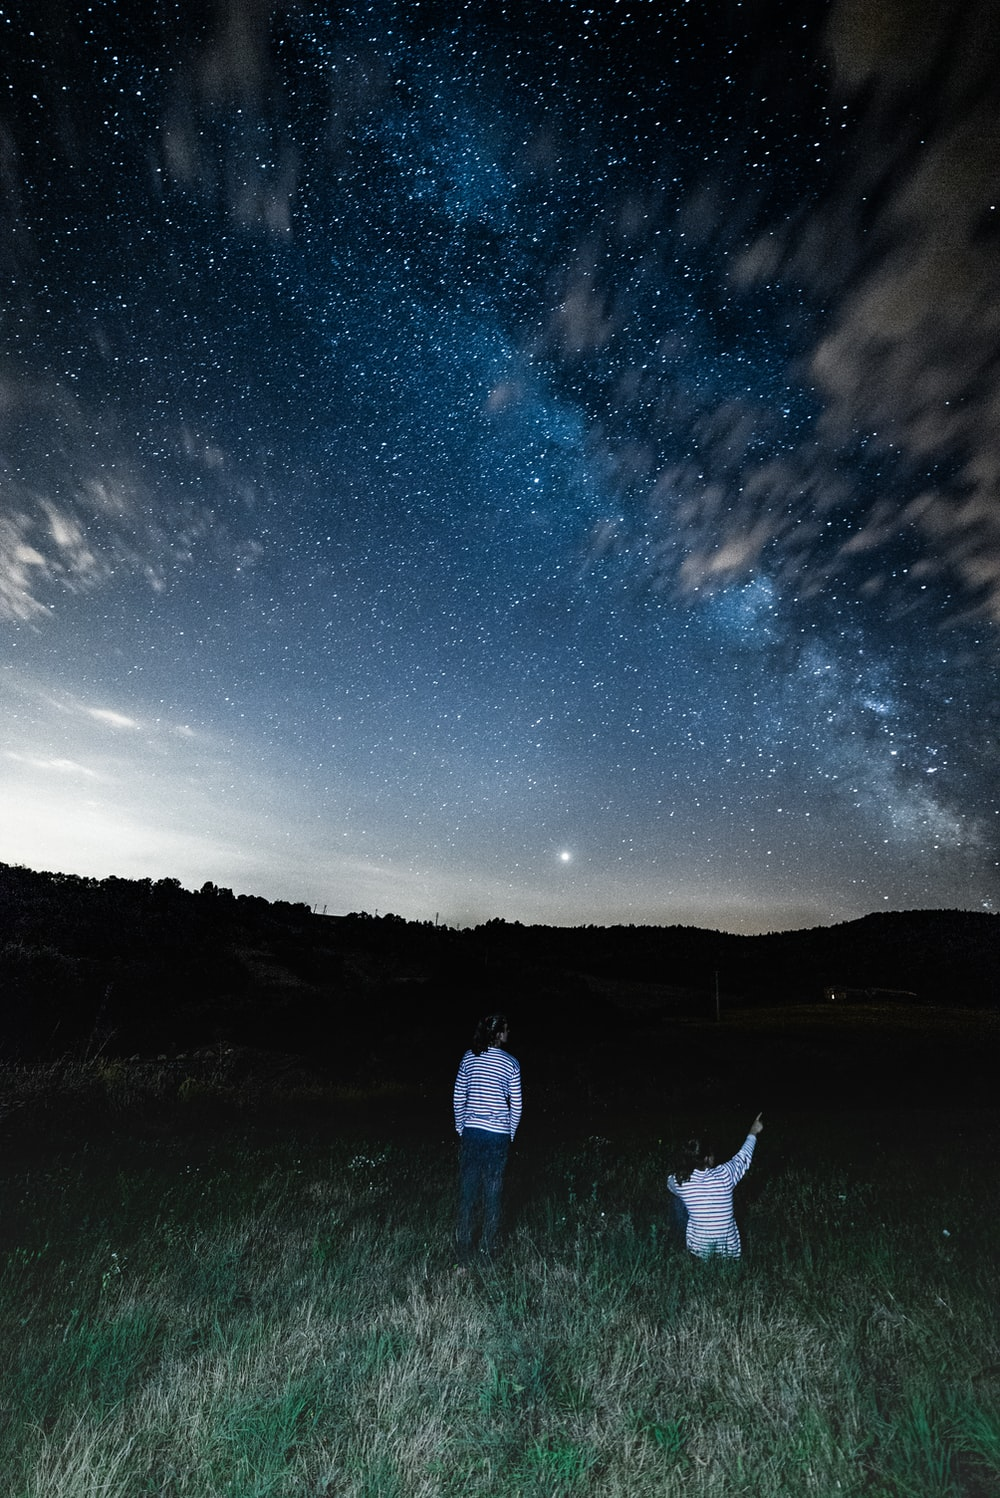 2 people in white shirts in field watching star formations in night sky